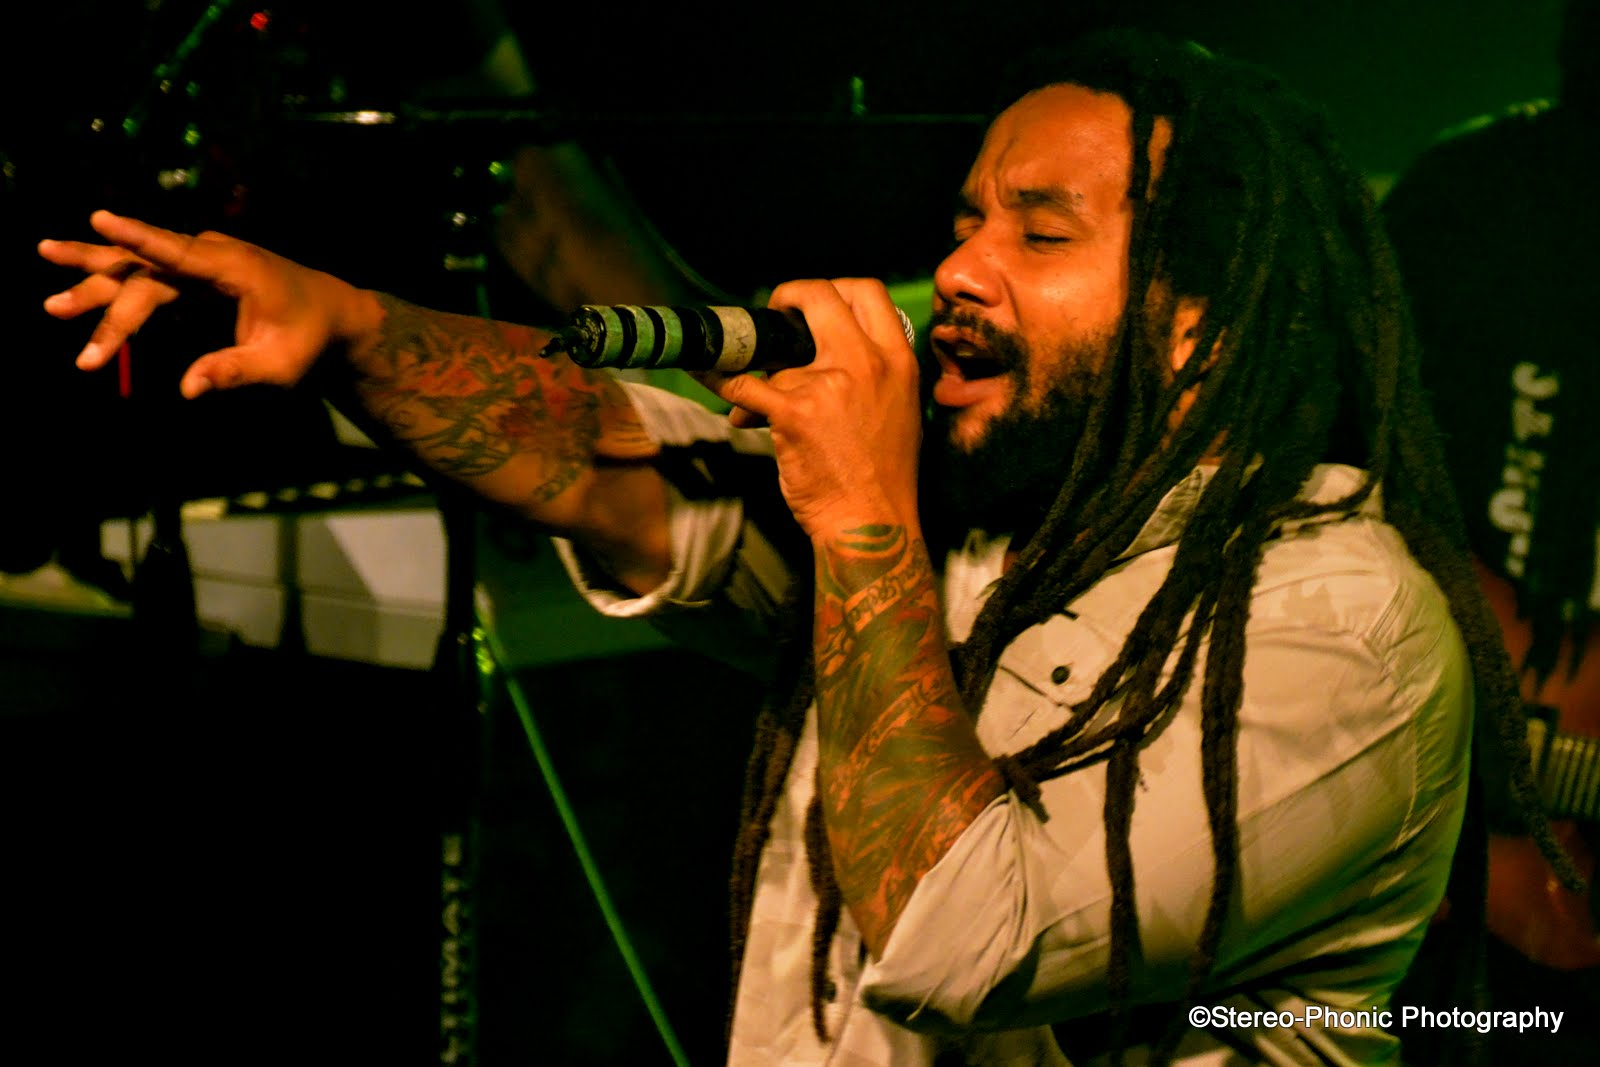 Feeling stressed? Well, Ky-Mani Marley has a drink for you ...